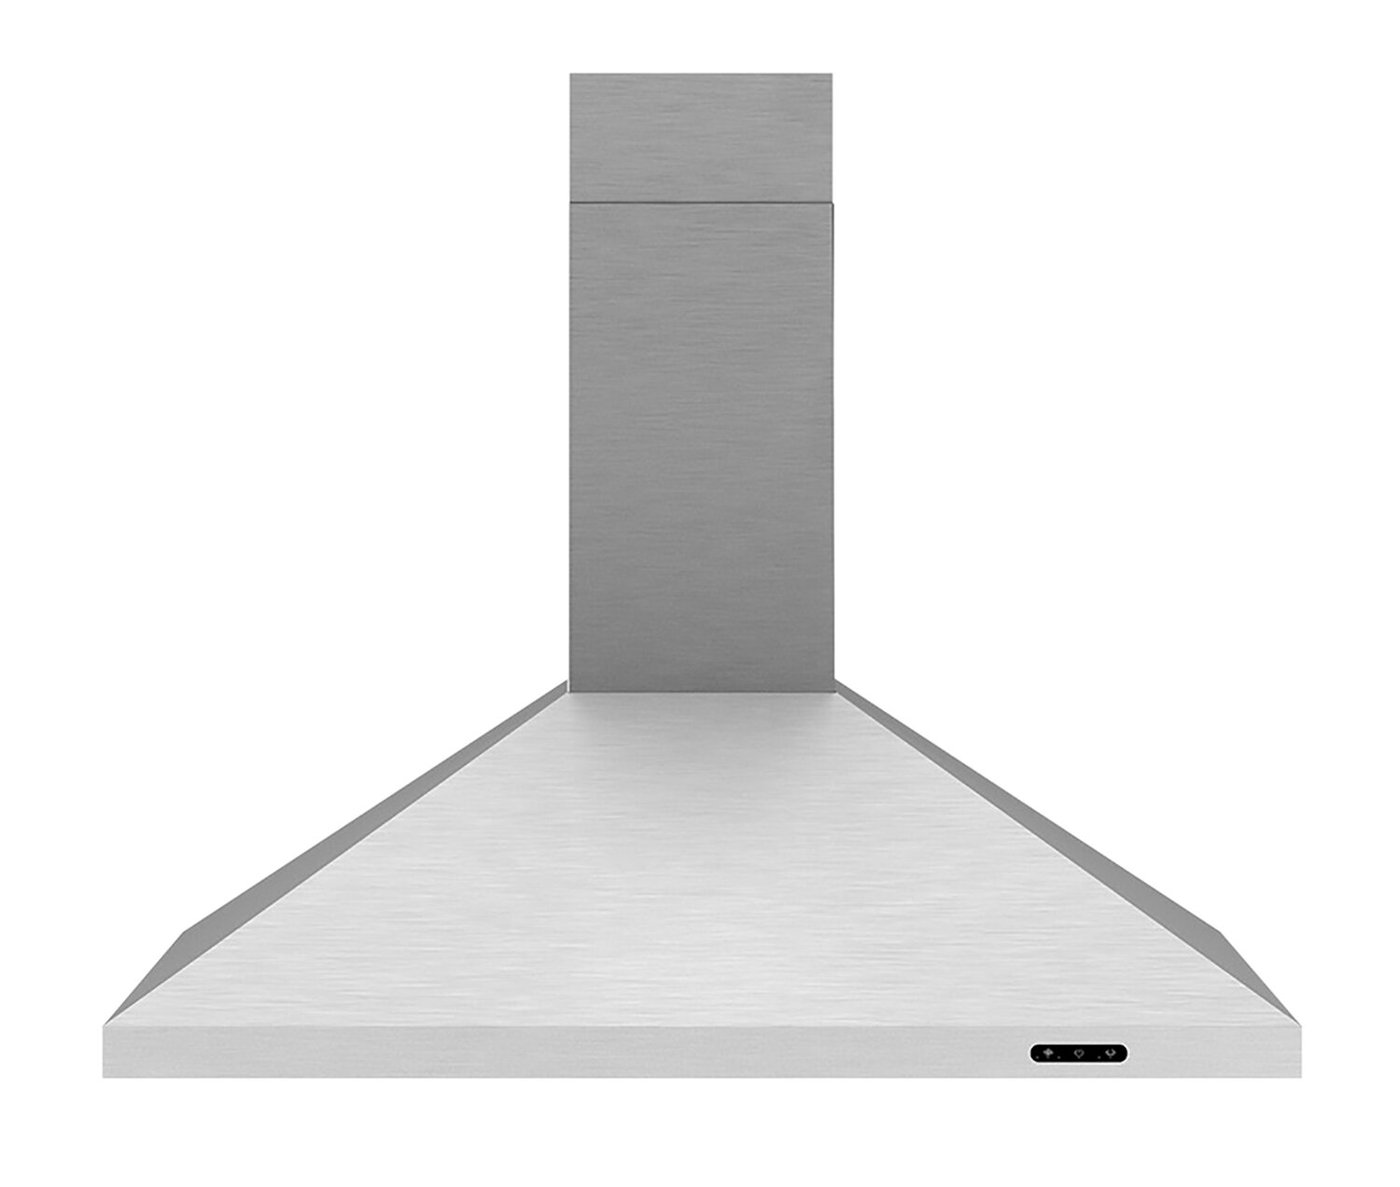 Broan Range Hood 36 StainlessSteel EW4836SS in Stainless Steel color showcased by Corbeil Electro Store